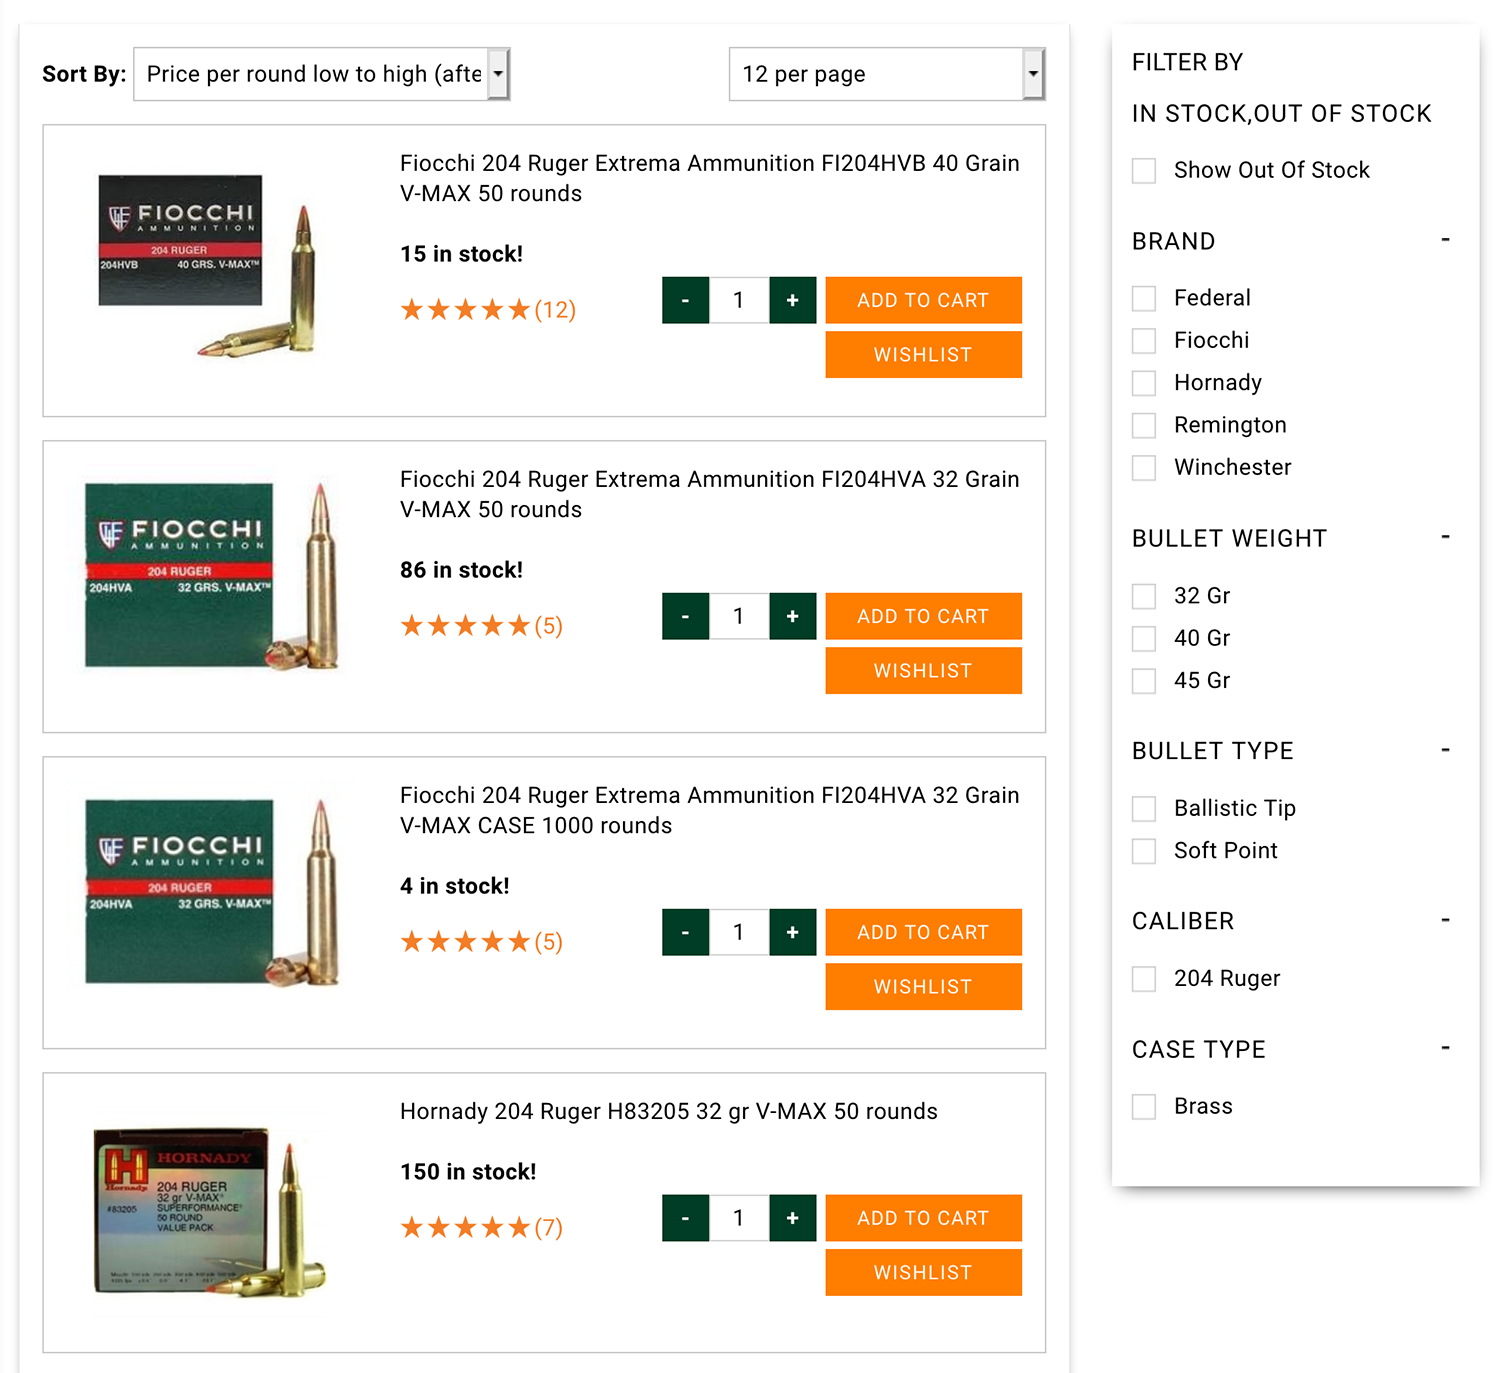 204 Ruger RIFLE AMMO